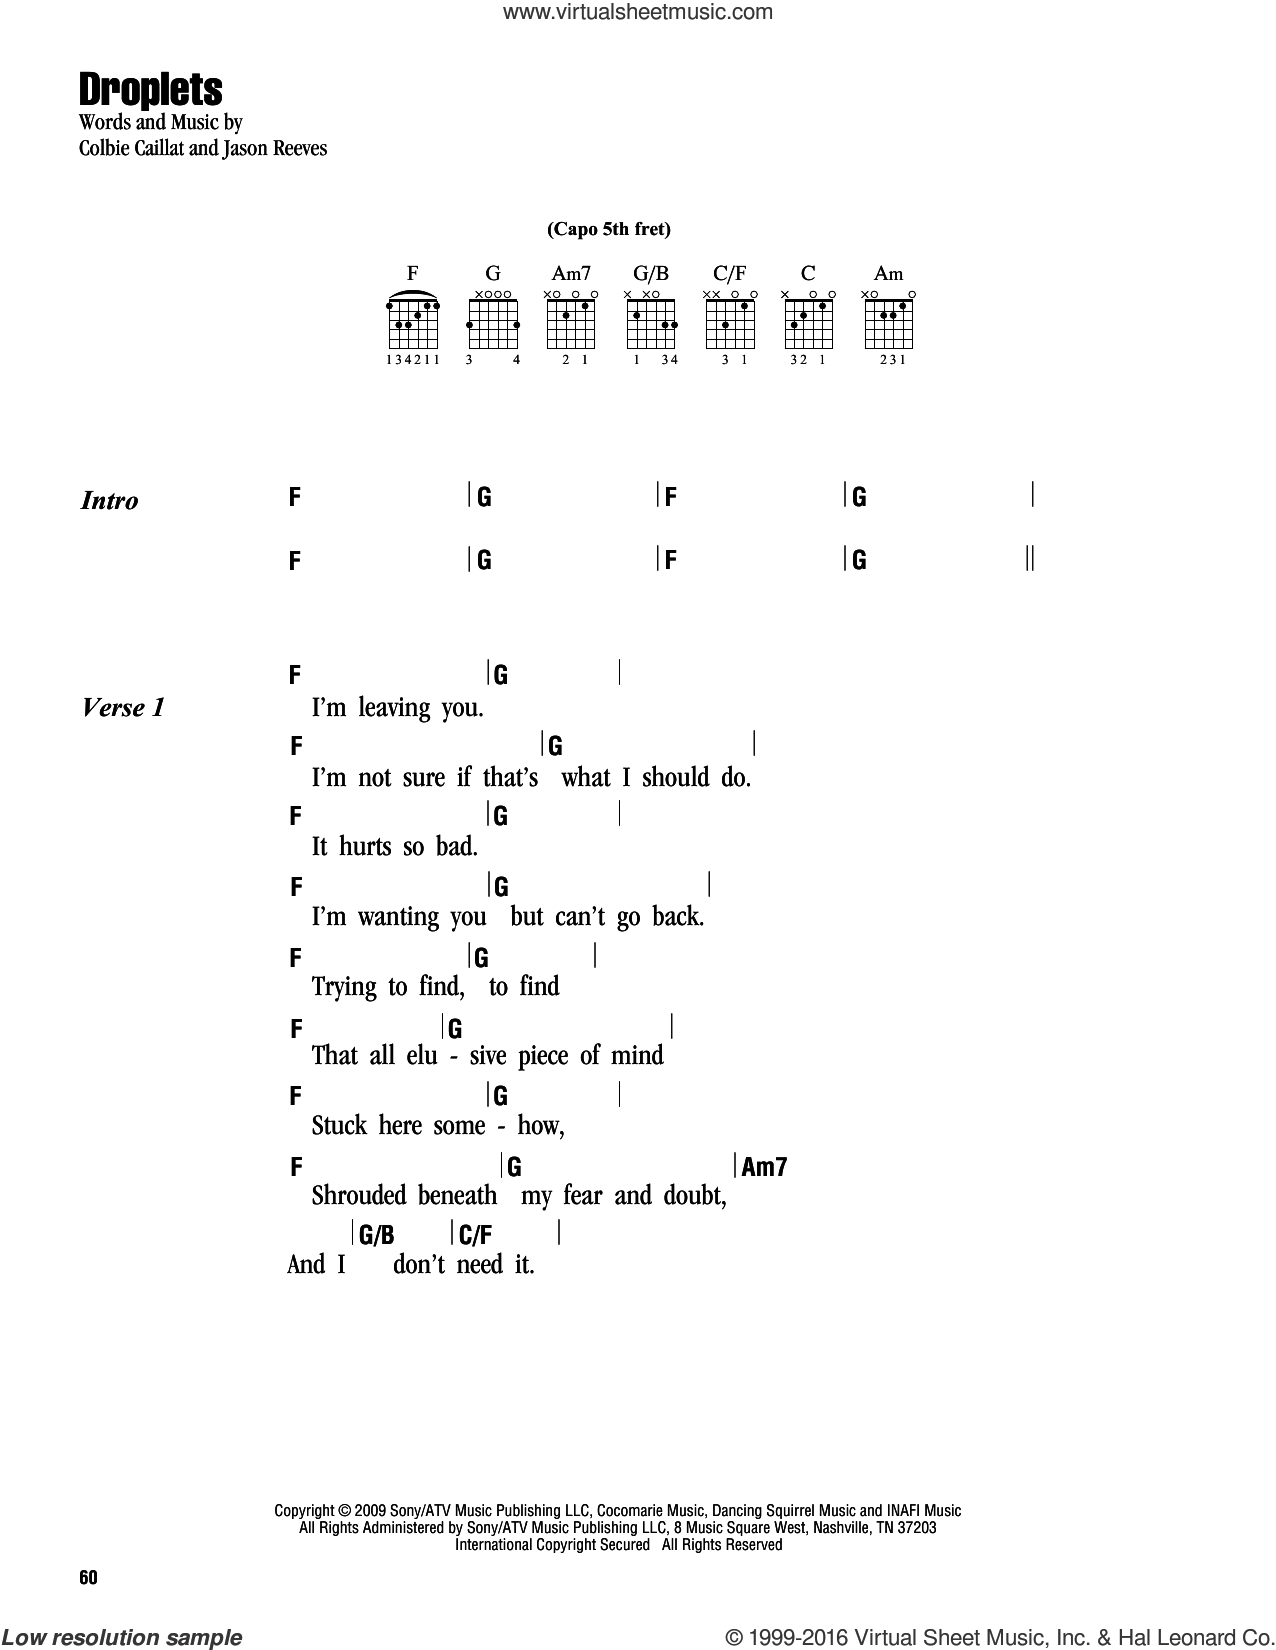 Droplets sheet music for guitar (chords) by Colbie Caillat and Jason Reeves, intermediate skill level